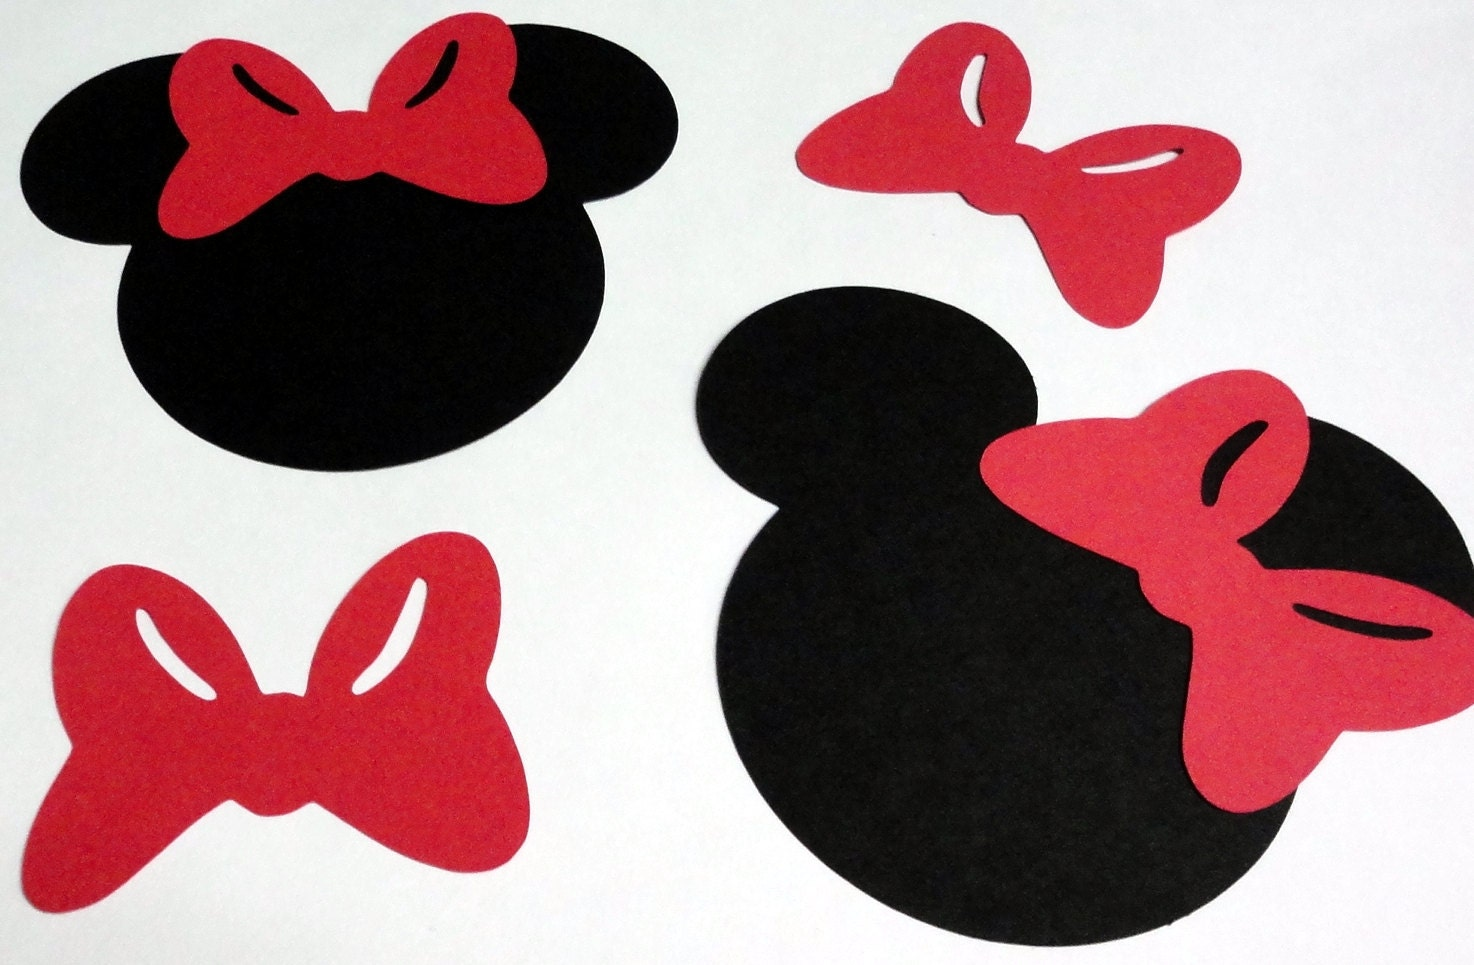 5 Minnie Mouse Head Silhouettes Black Cutouts with Bow